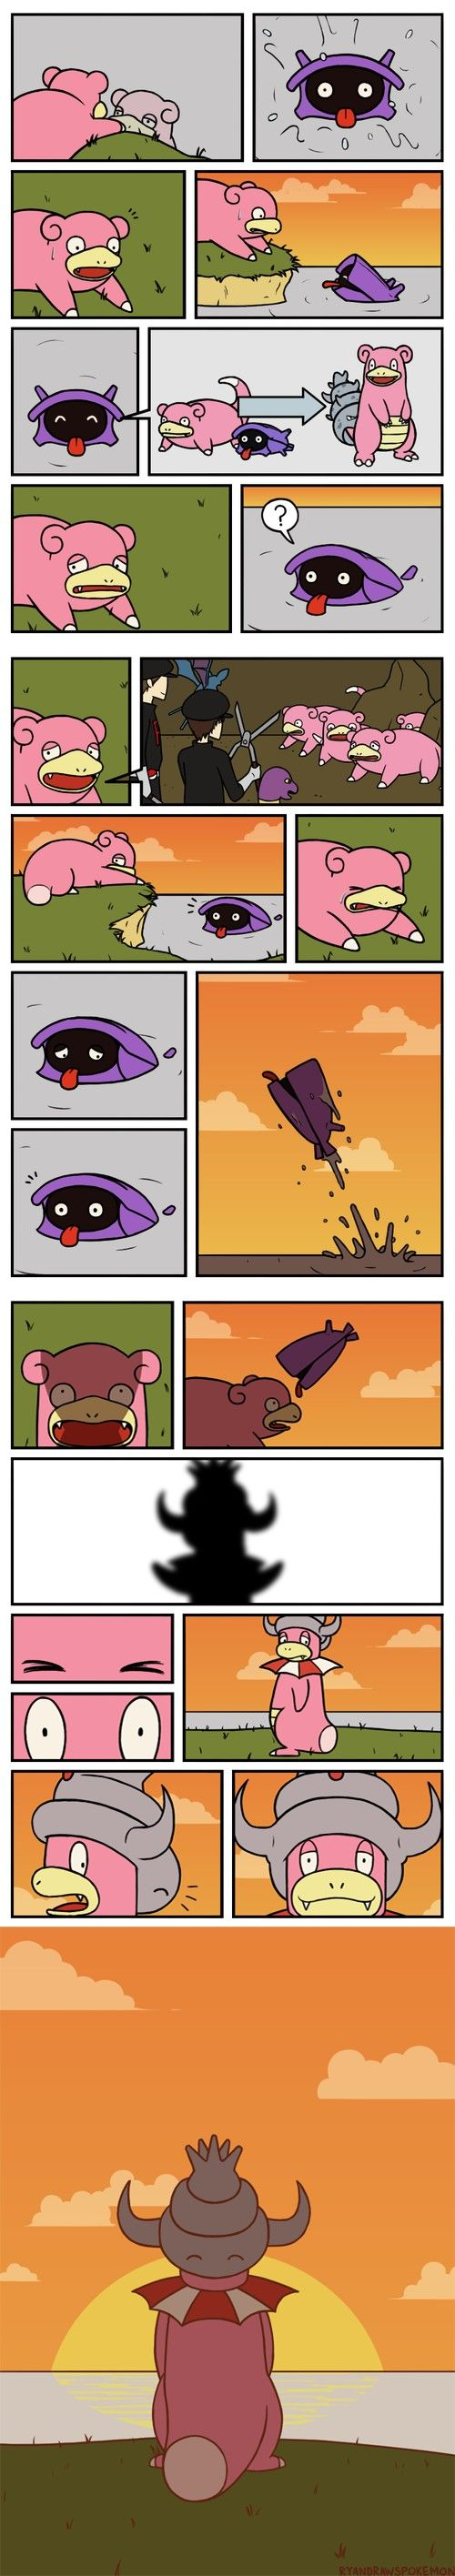 Pokemon Comic — Slowpoke wanted to be Slowbro, but Shellder helps him turn into a Slowking instead because he lost his tail.